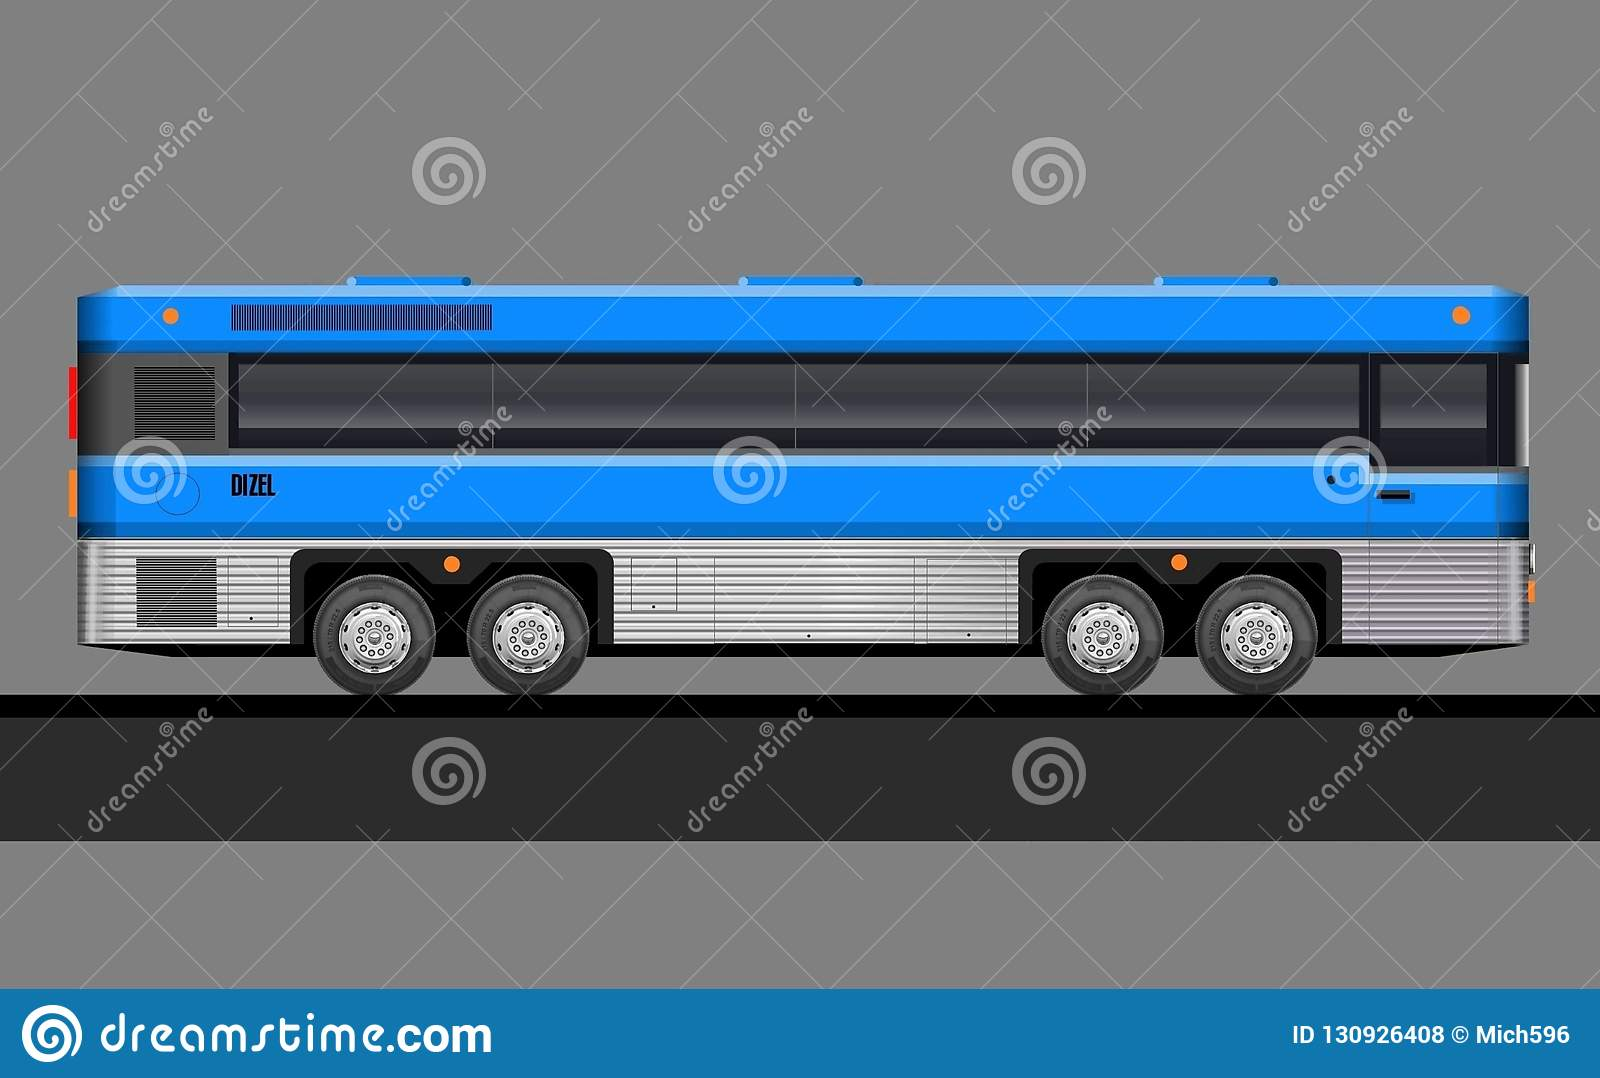 Transport, public, city, service, tourism, car, illustration, intercity, side view, realistic, foreground, truck, vintage, classic